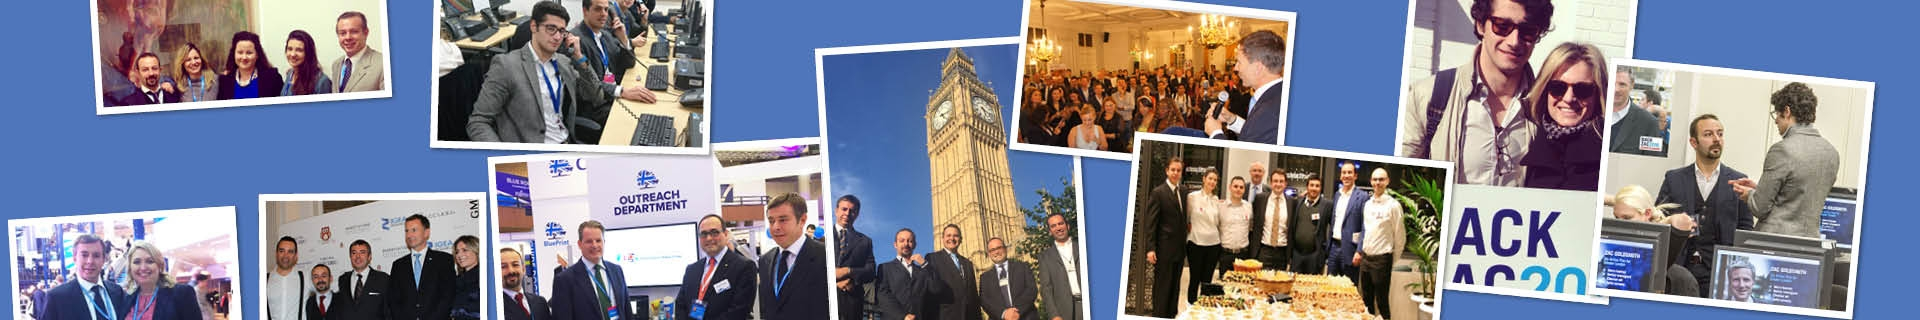 Banner image for Westminster Italian Conservatives